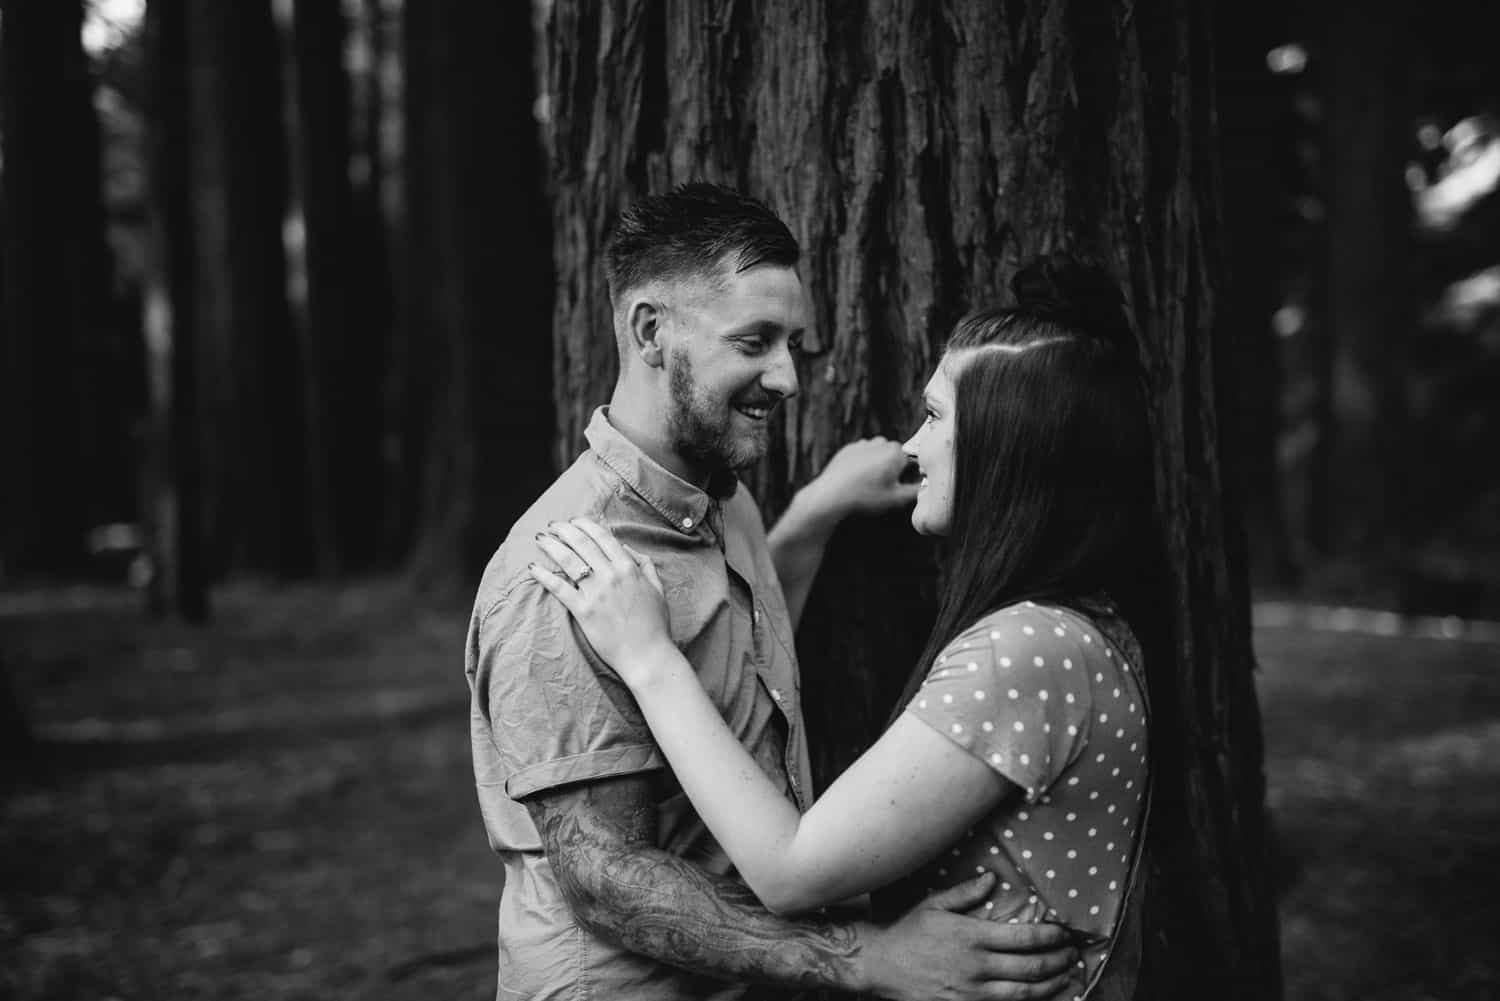 Chelsea and luke's engagement session at the Redwoods